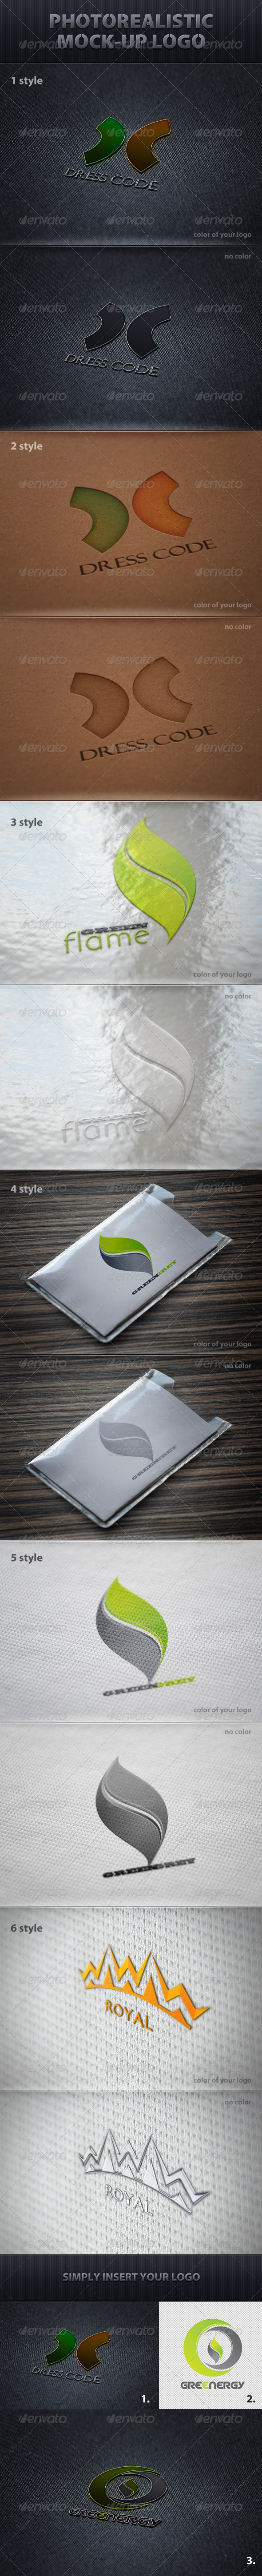 GraphicRiver Photorealistic Mock-Up Logo 2491273